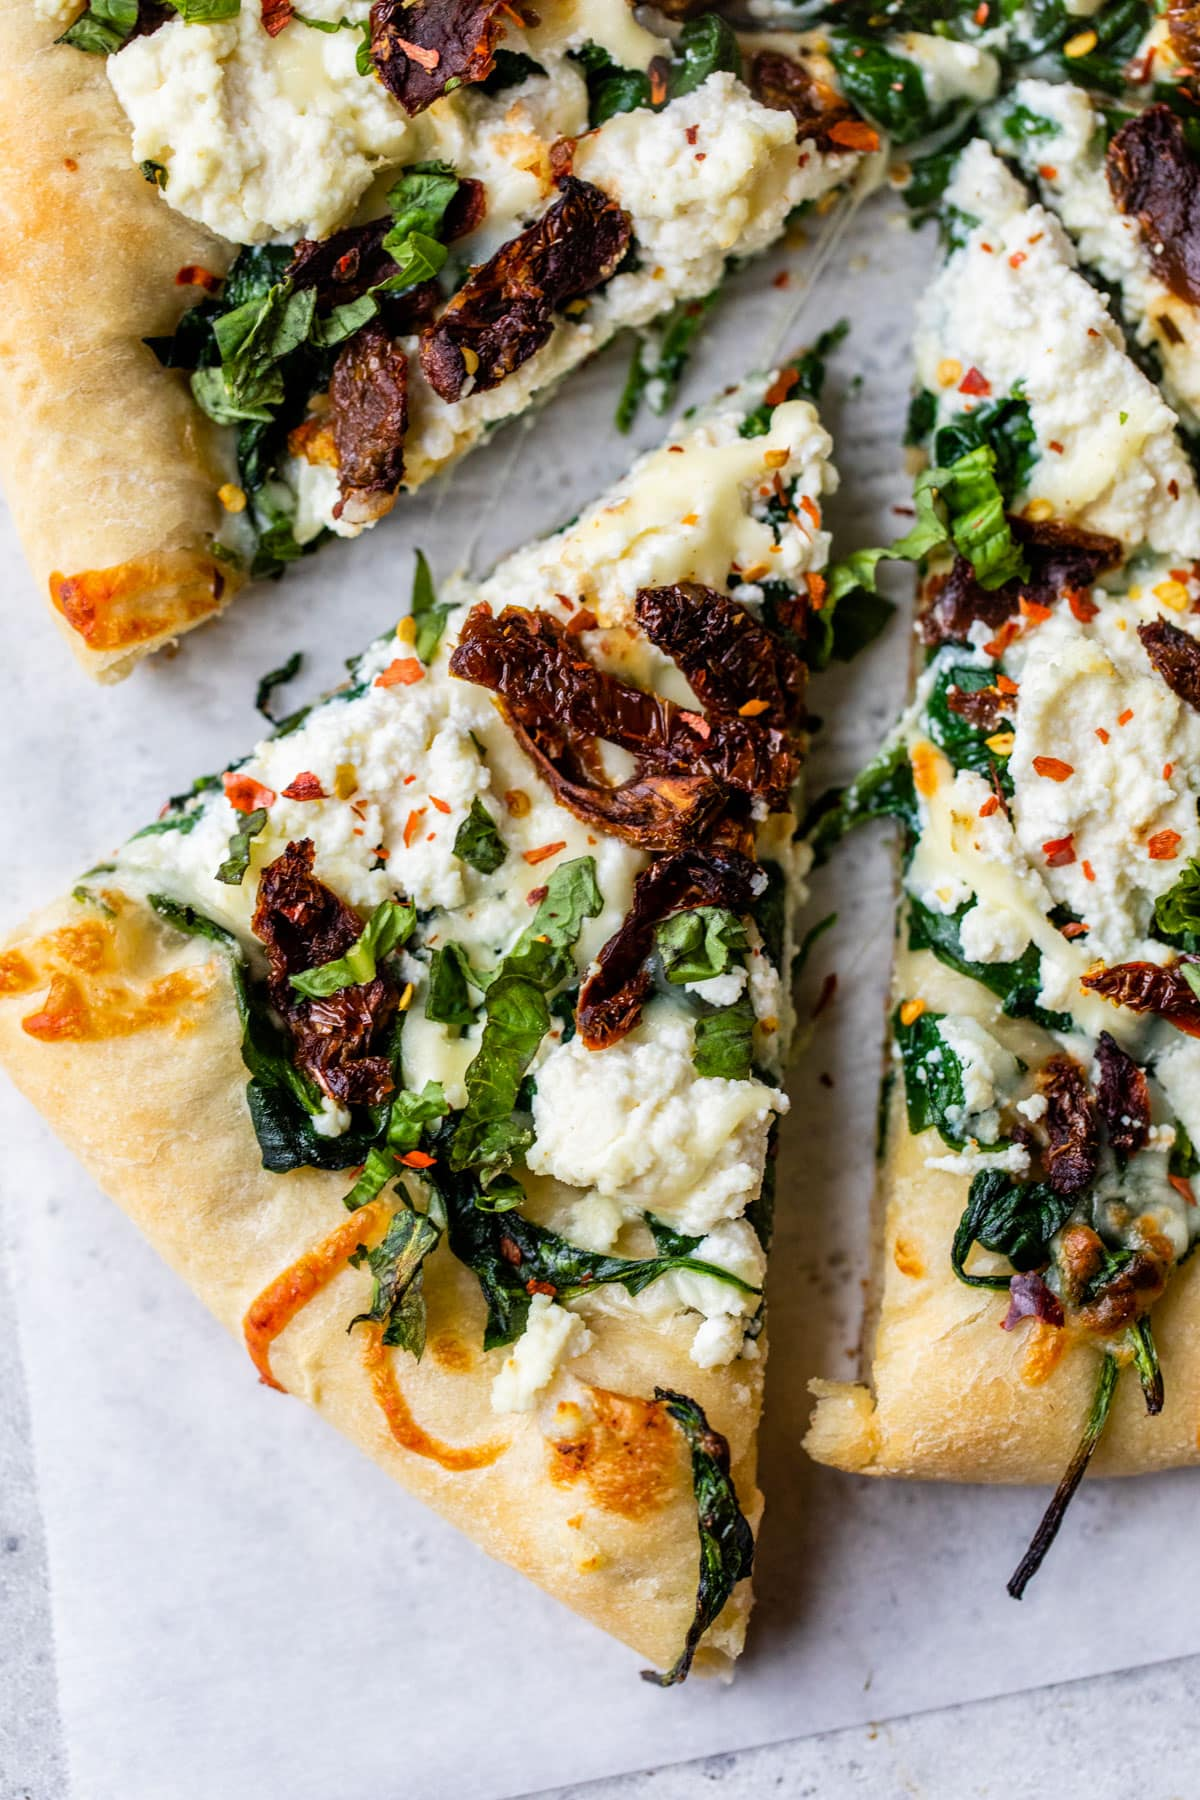 Ricotta Pizza with Peaches and a balsamic drizzle